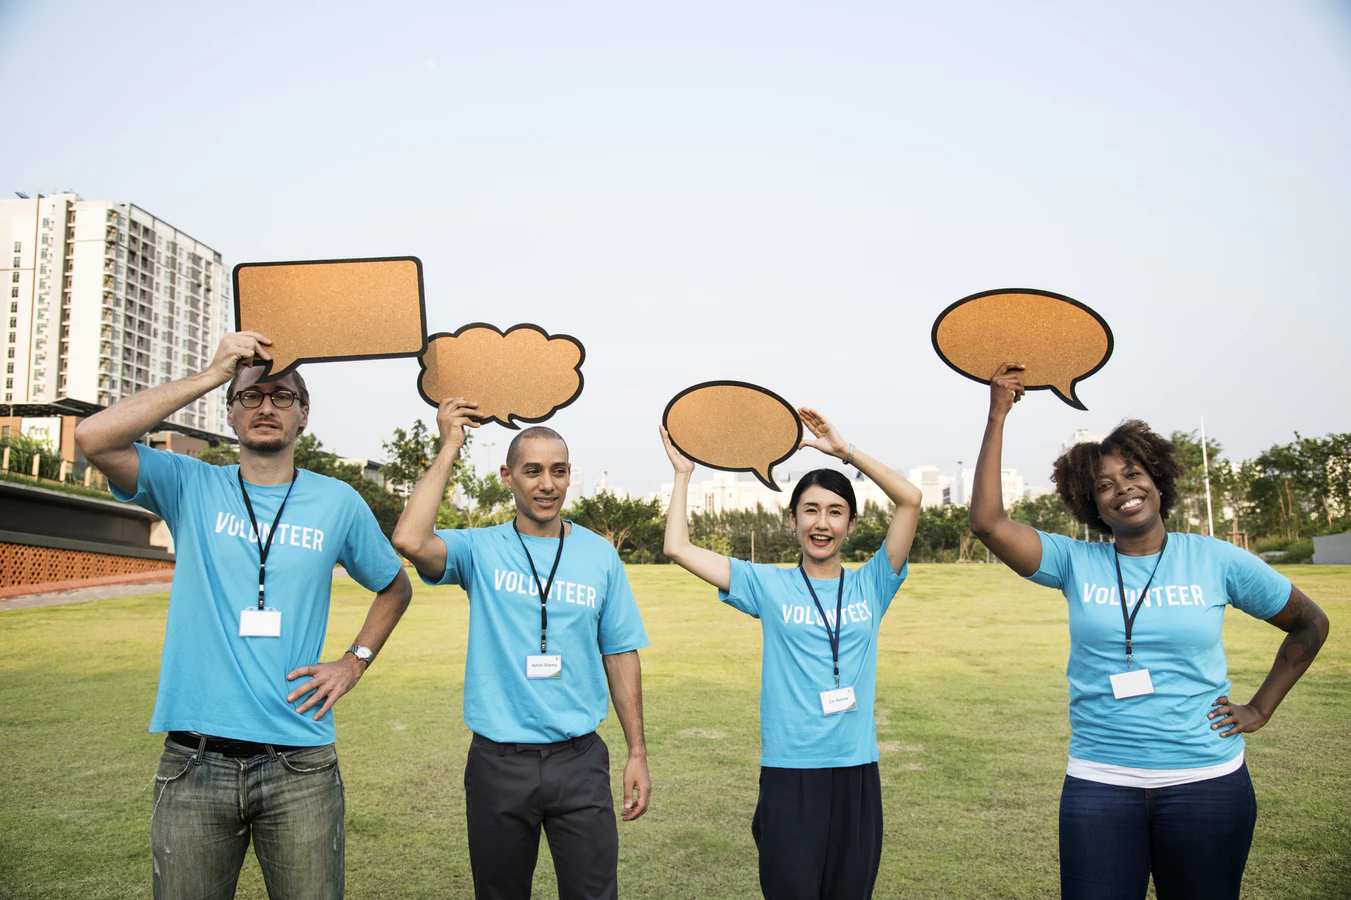 Personal conversations help increase engagement in scoial media